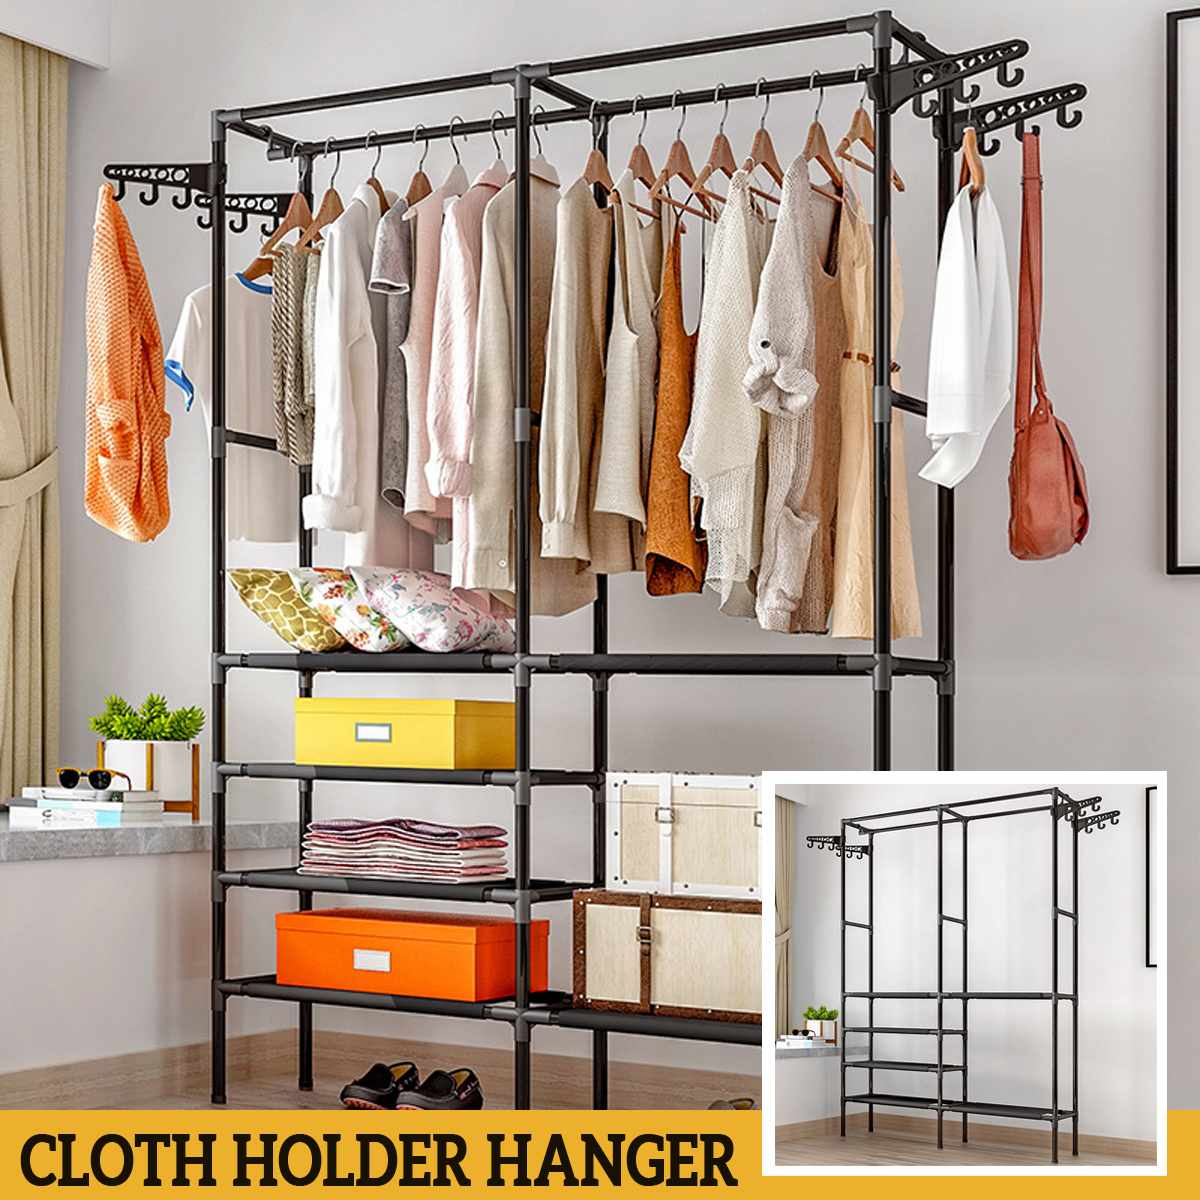 Vêtements debout de plancher de support de vêtements accrochant les supports colorés de cintre d'étagère de stockage Couple meubles simples de chambre à coucher de Style title=